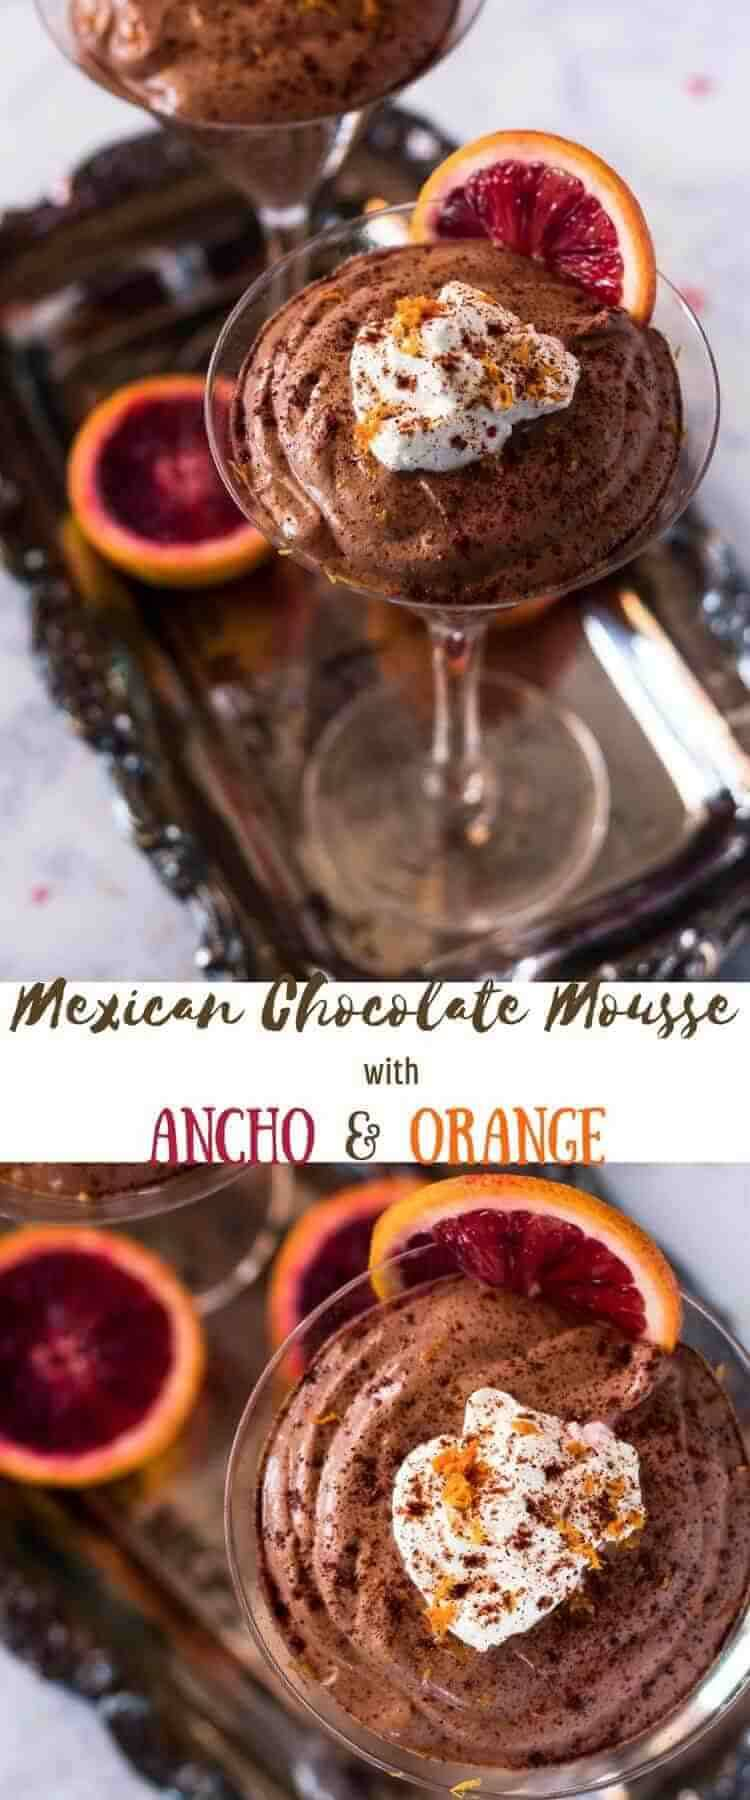 Mexican Chocolate Mousse - Mexican Chocolate Mousse With Ancho and Orange combines the luscious flavor of Mexican chocolate with Triple Sec and a hint of ancho chile powder in a fluffy, creamy mousse! A sweet treat that's hard to beat, and not a lot of effort... Mexican chocolate   mousse recipes   easy dessert recipes